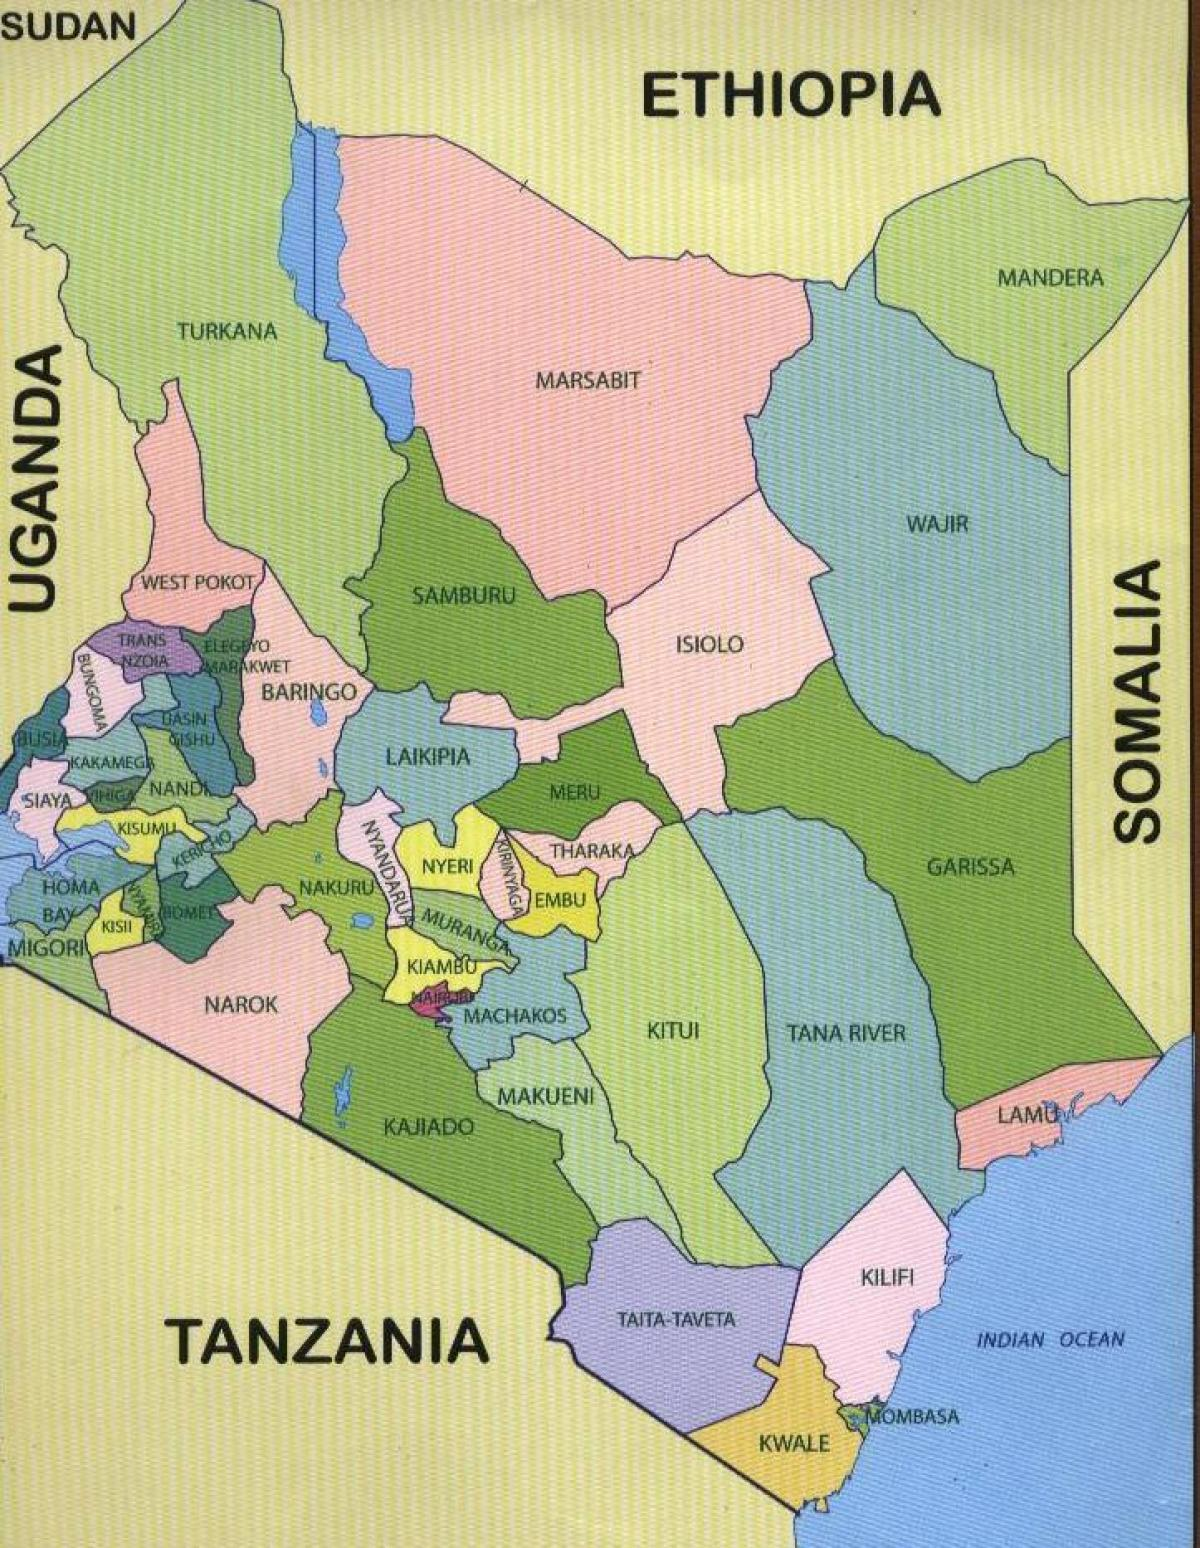 counties of Kenya map